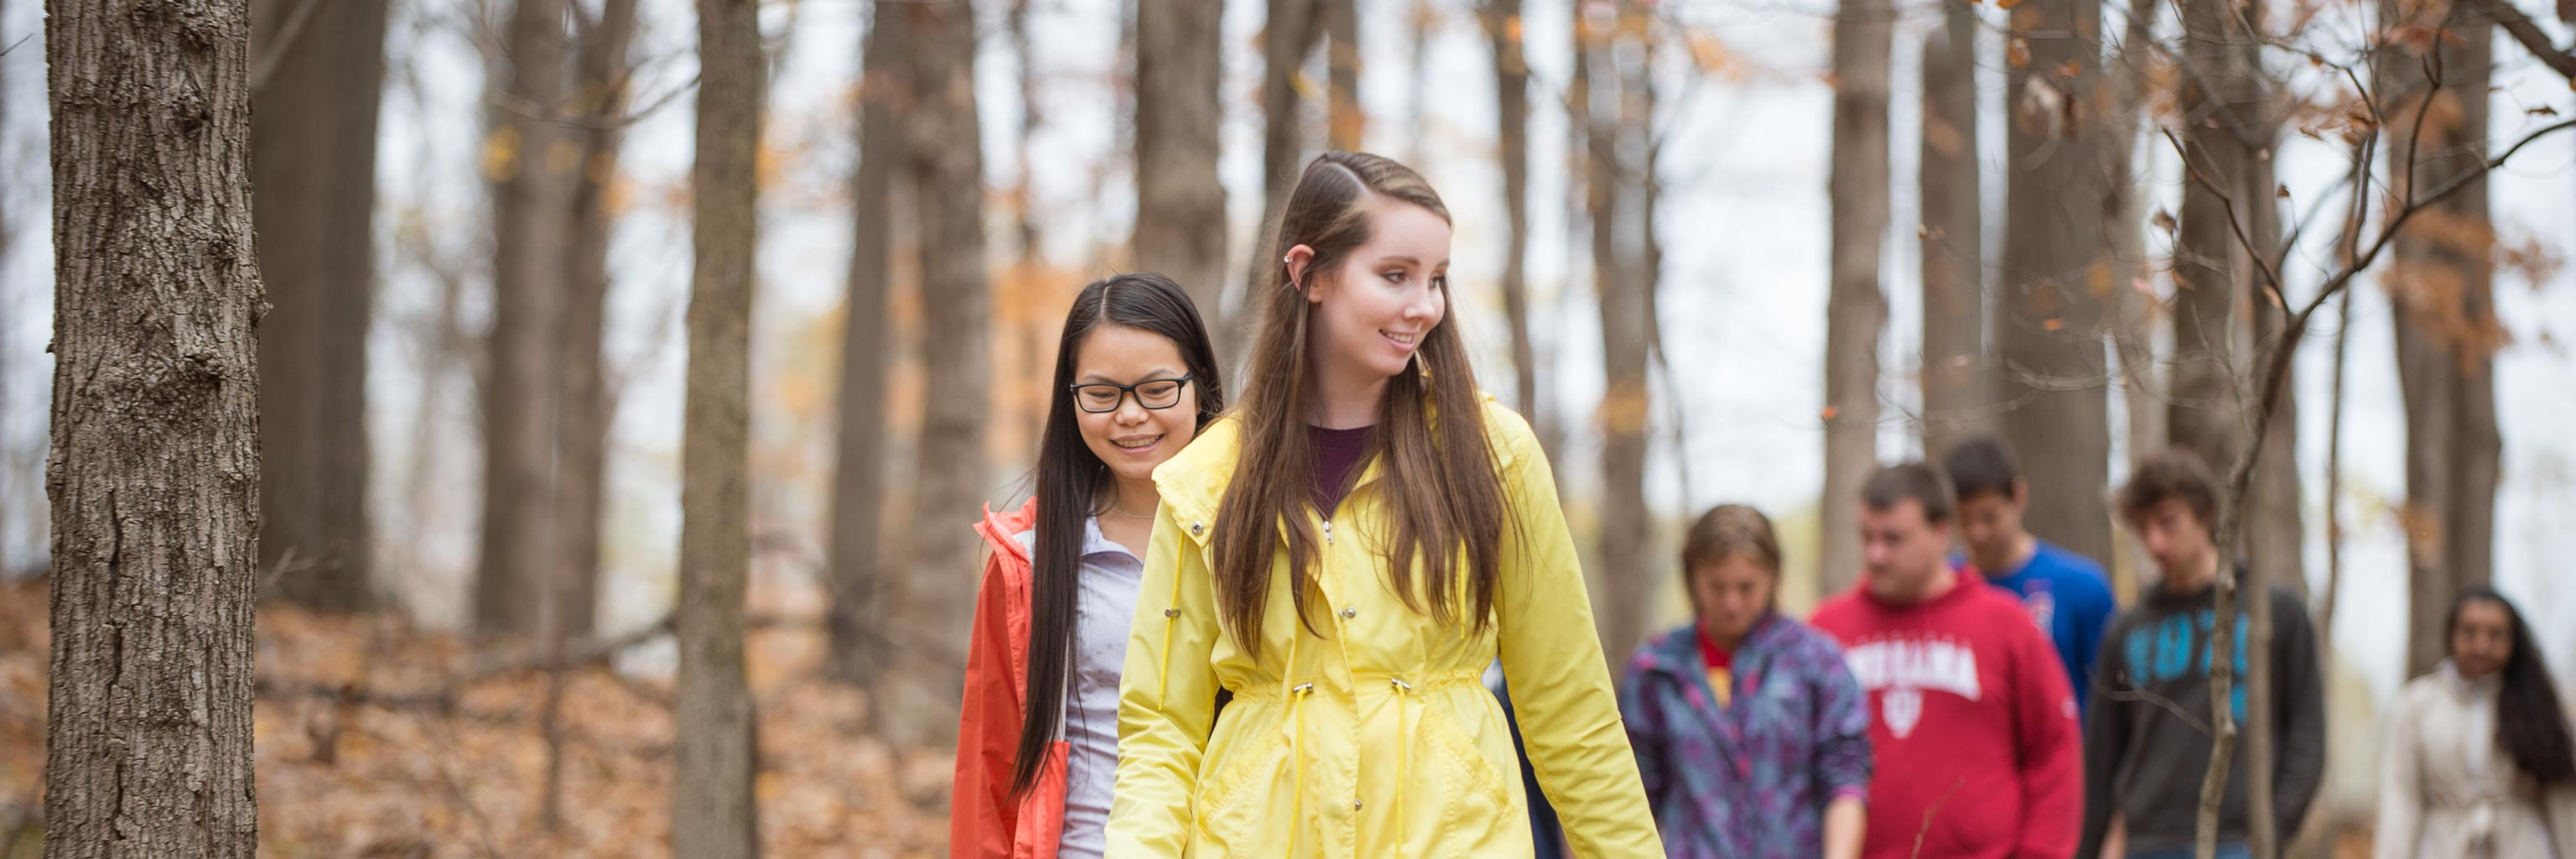 Class of students walking through the woods